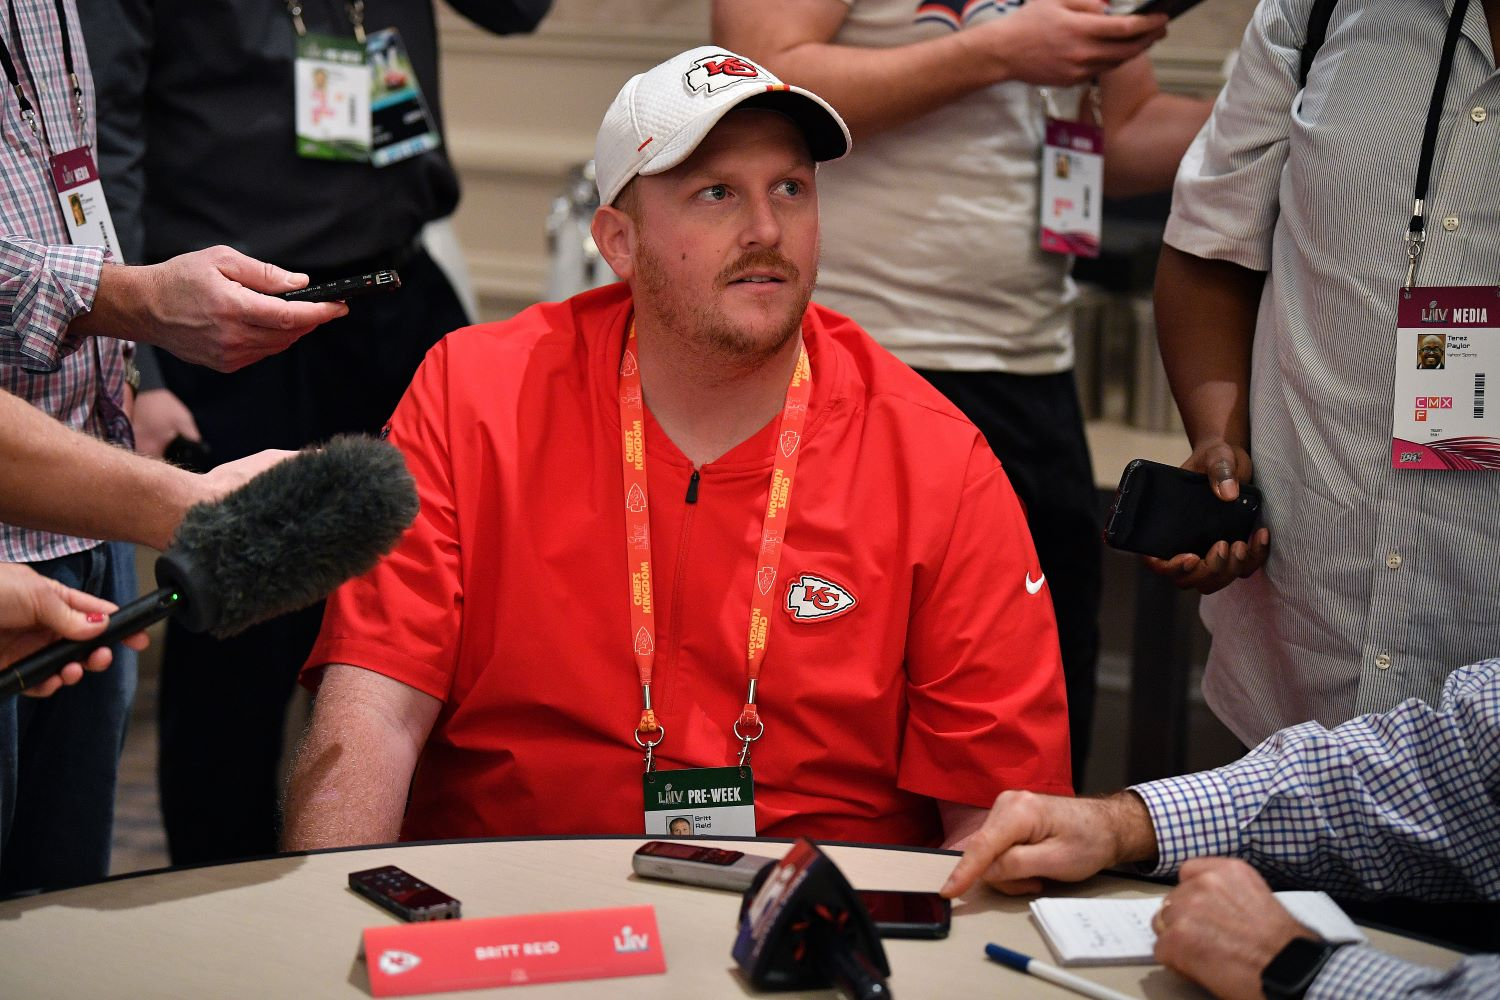 Andy Reid's son, Britt Reid, will not coach for the Chiefs in Super Bowl 55 after a car crash left one child with life-threatening injuries.